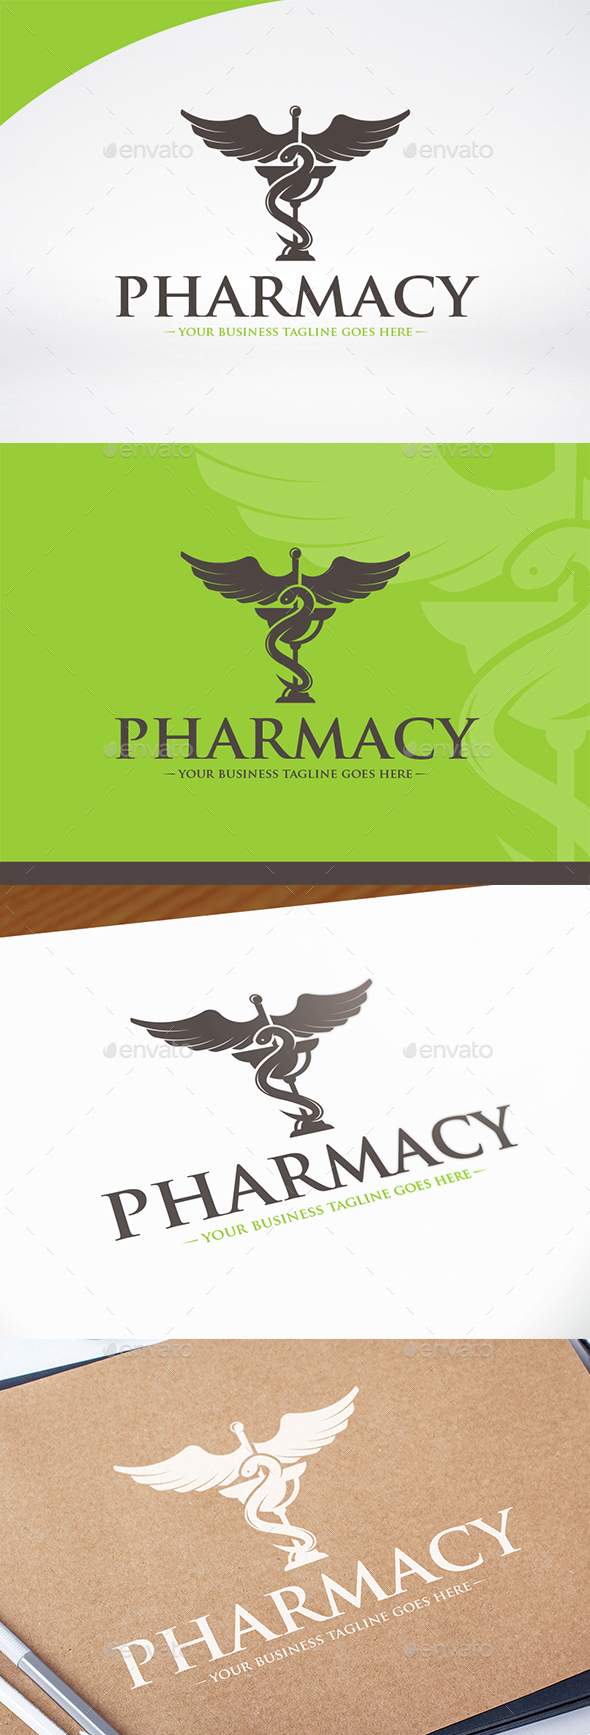 Pharmacy Logo Template - Vector Abstract